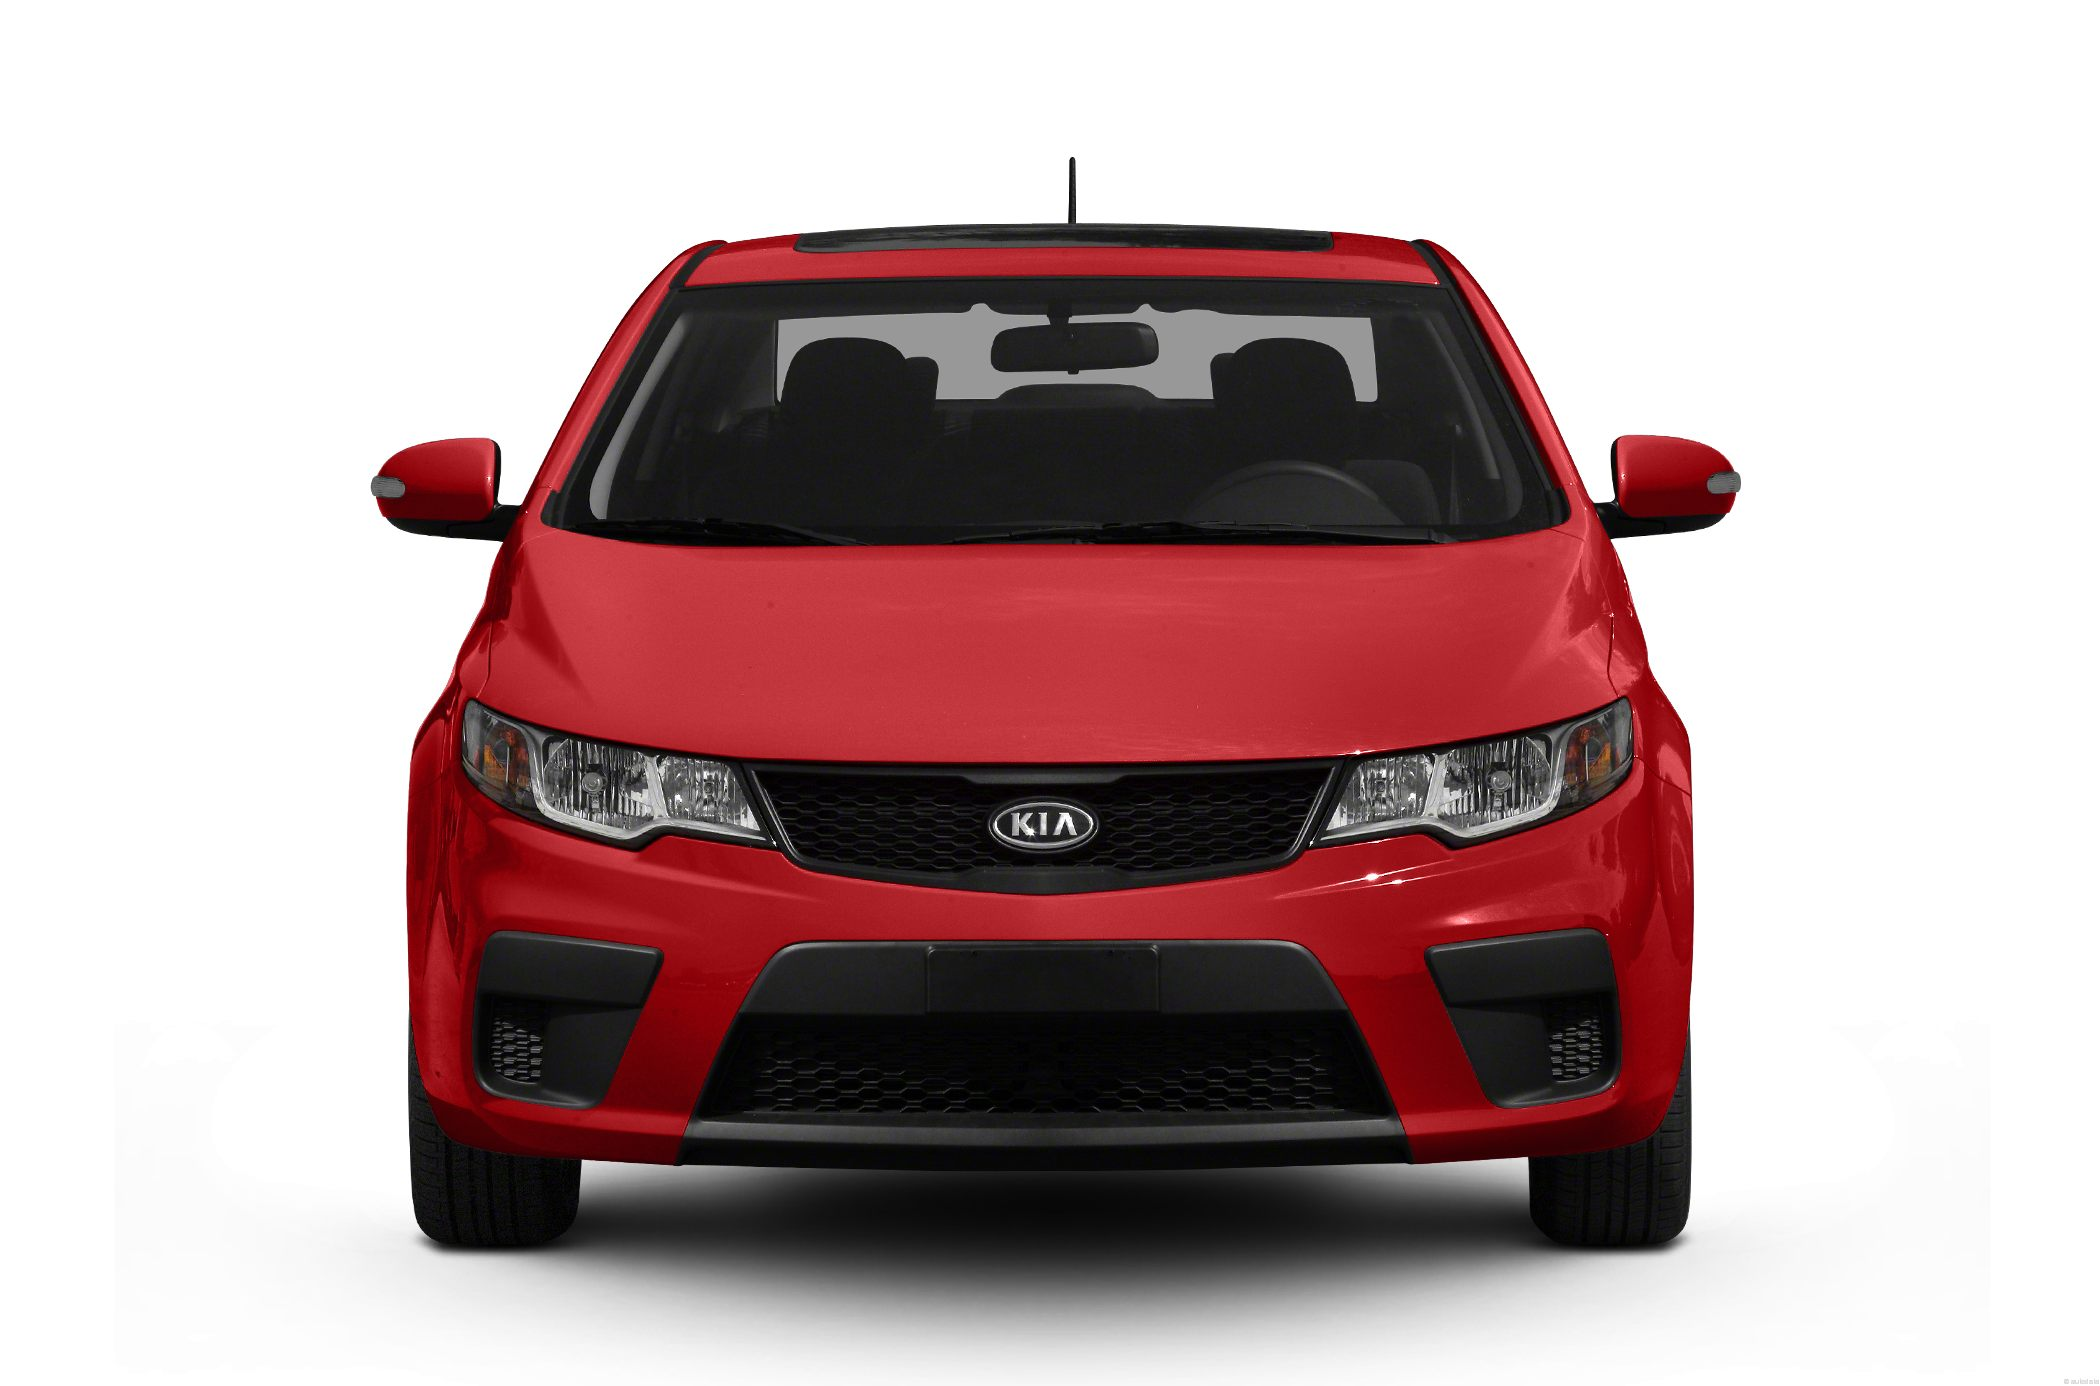 Kia Car Front Png 32702 Free Icons And Png Backgrounds